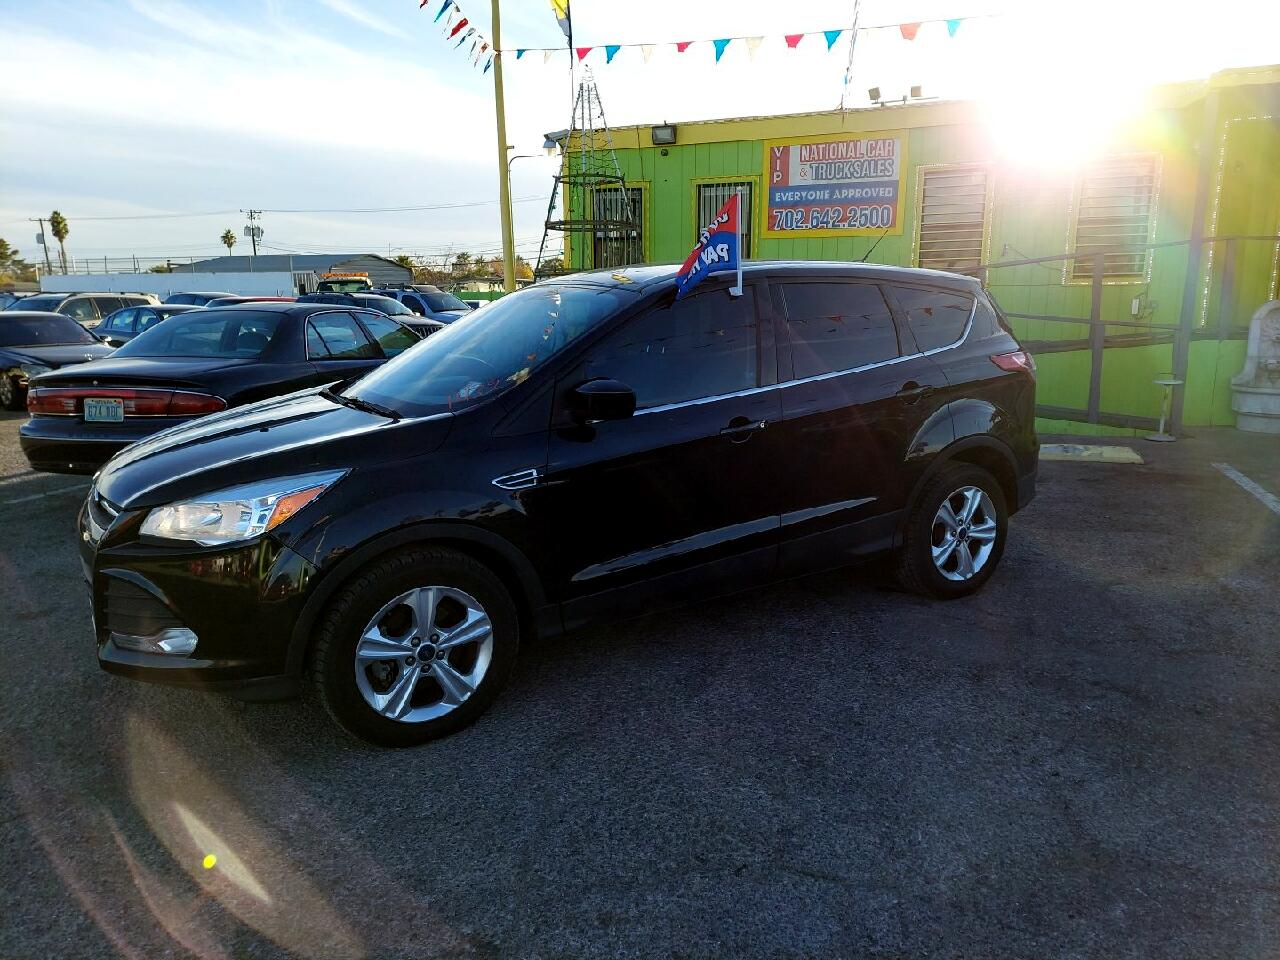 Ford Escape FWD 4dr I4 Auto XLT 2014